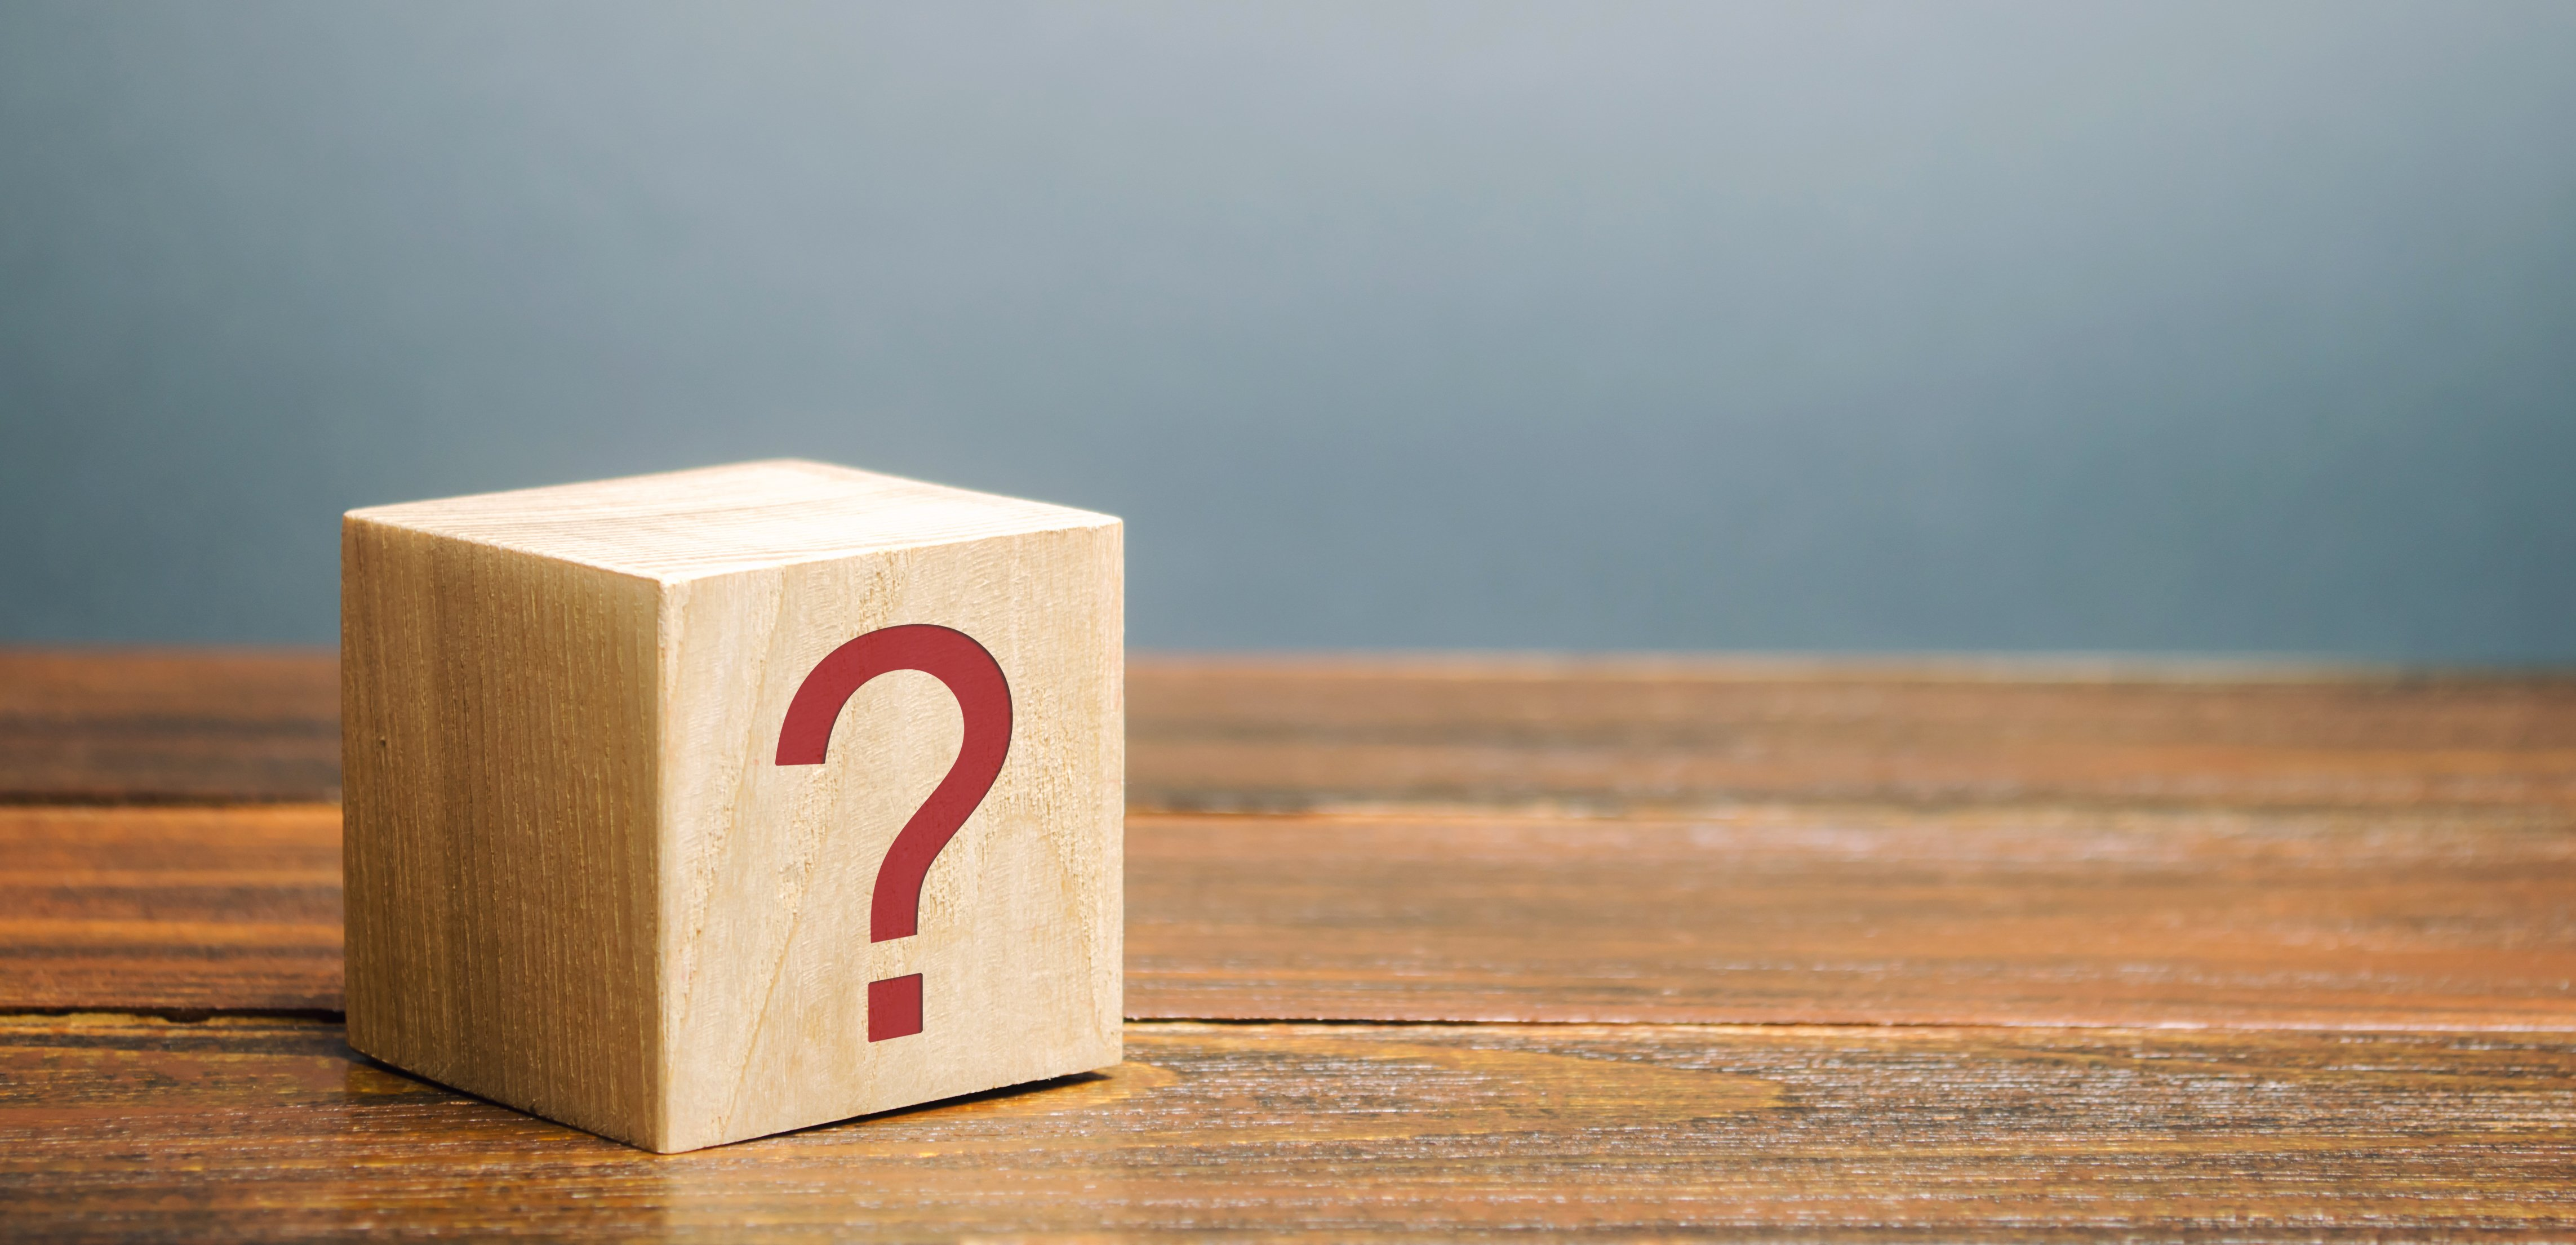 bigstock-Wooden-Block-With-A-Question-M-333545290